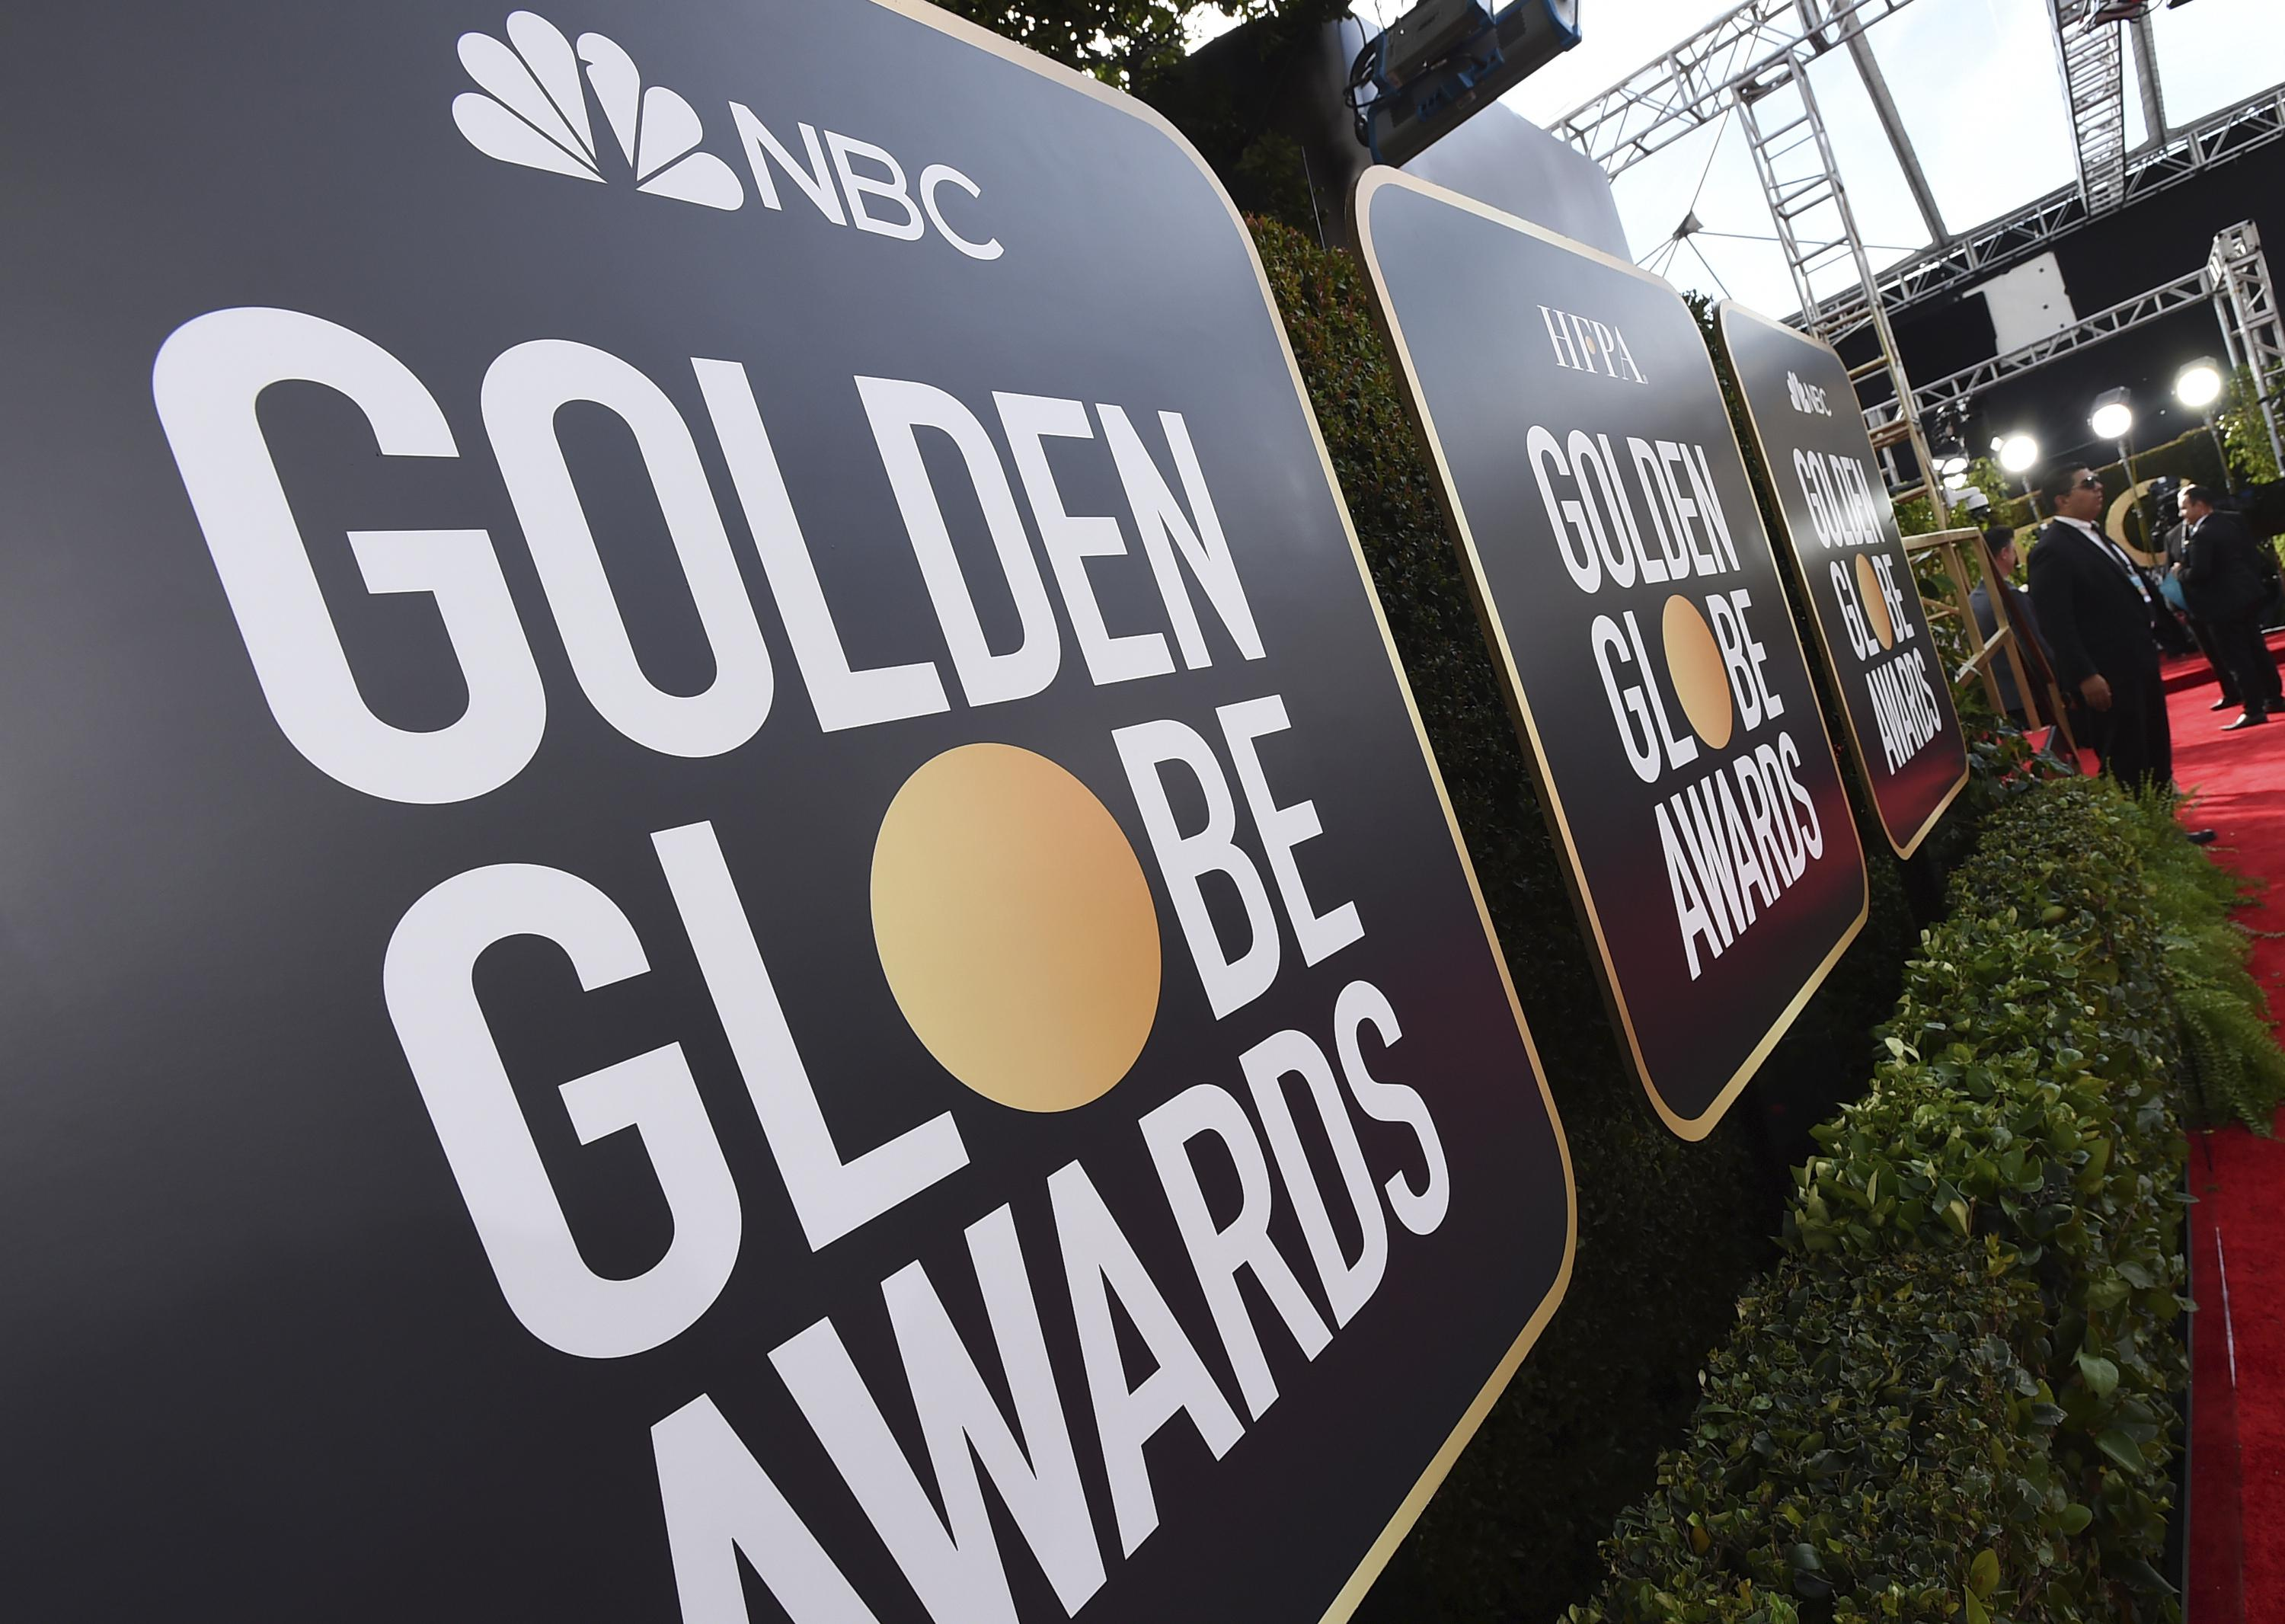 NBC will not air the Golden Globes telecast in 2022 due to ongoing diversity issues, network says